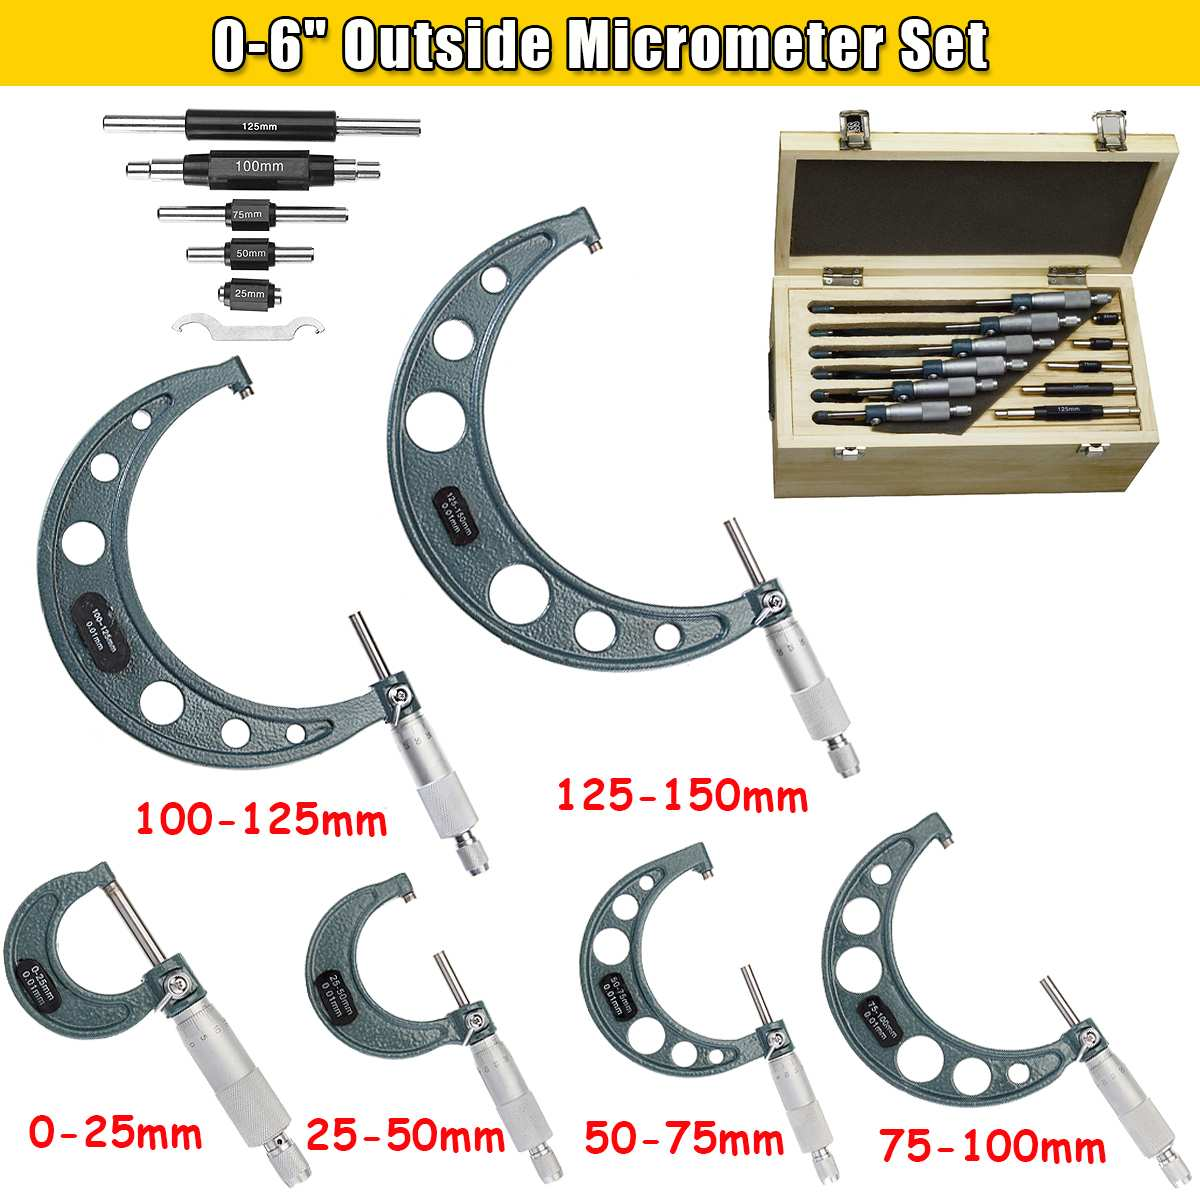 "Pro Outside Micrometer 0.0004"" Precision 0-150MMMic Set Machinist Tool Carbide Tip Micrometre Gauge Caliper With Case"